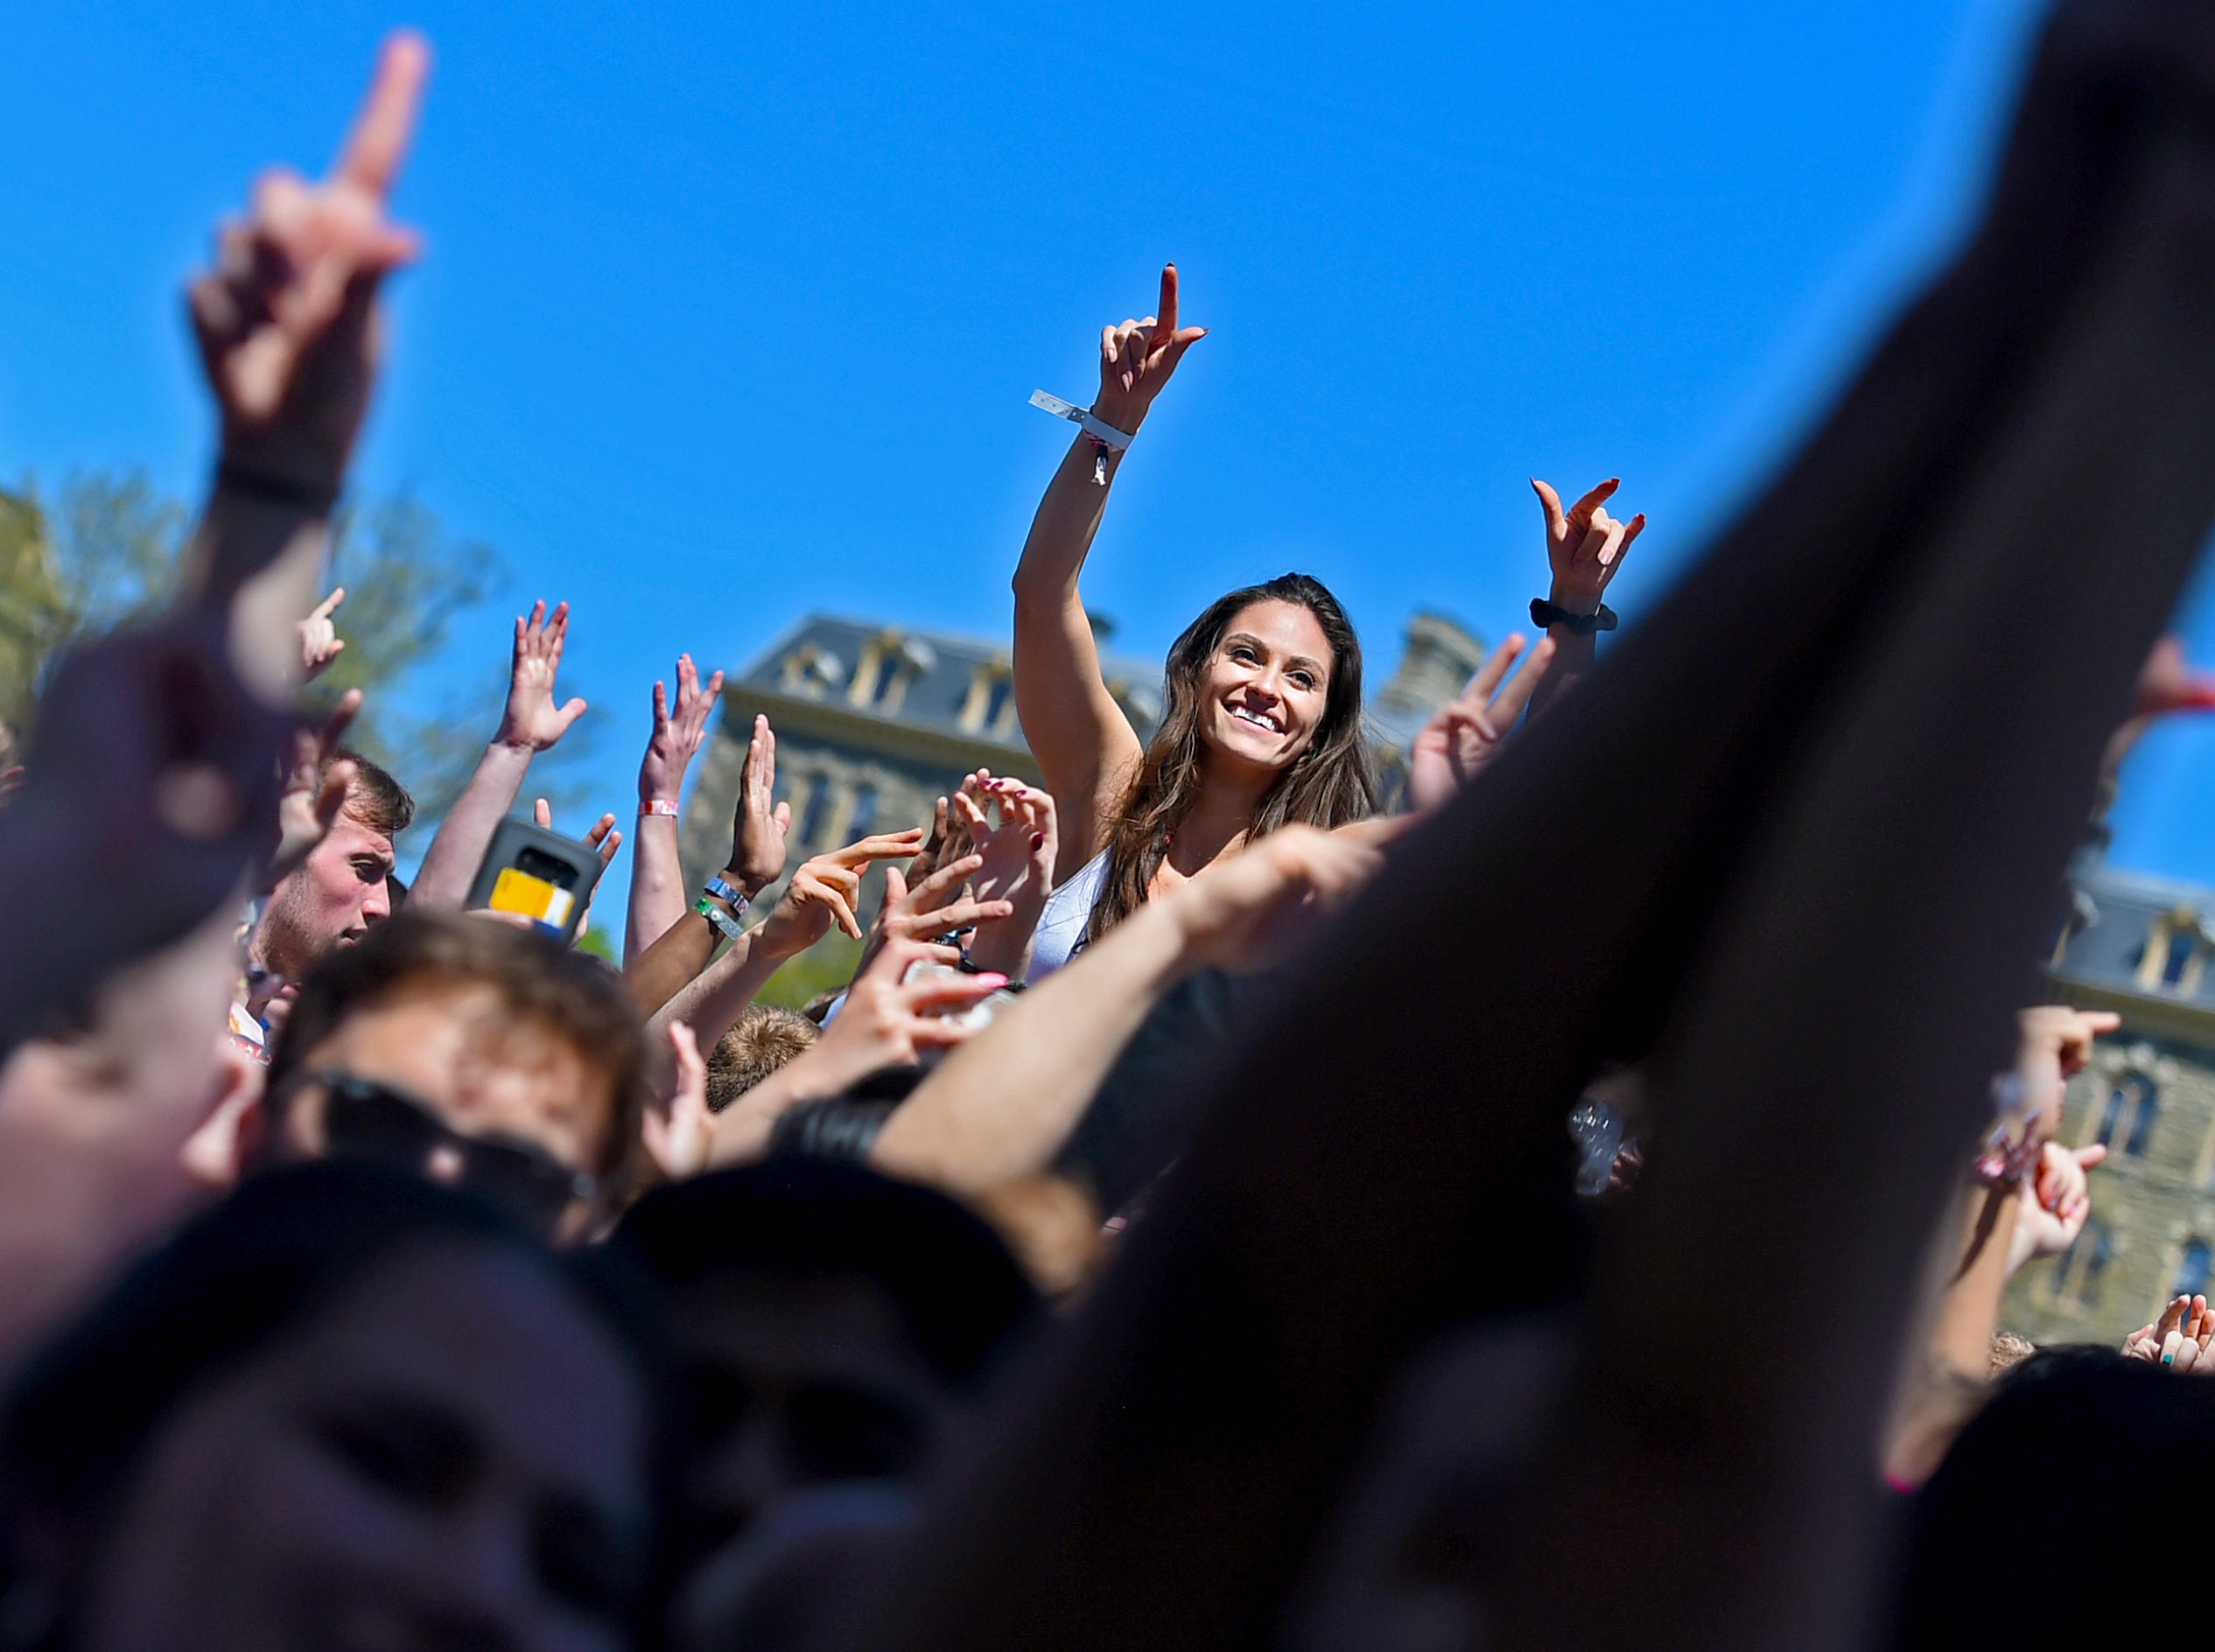 Cornell University students enjoy Slope Day 2019. An annual spring tradition, Slope Day 2019 featured music by Steve Aoki, Cousin Stizz, and EZI. May 8, 2019.